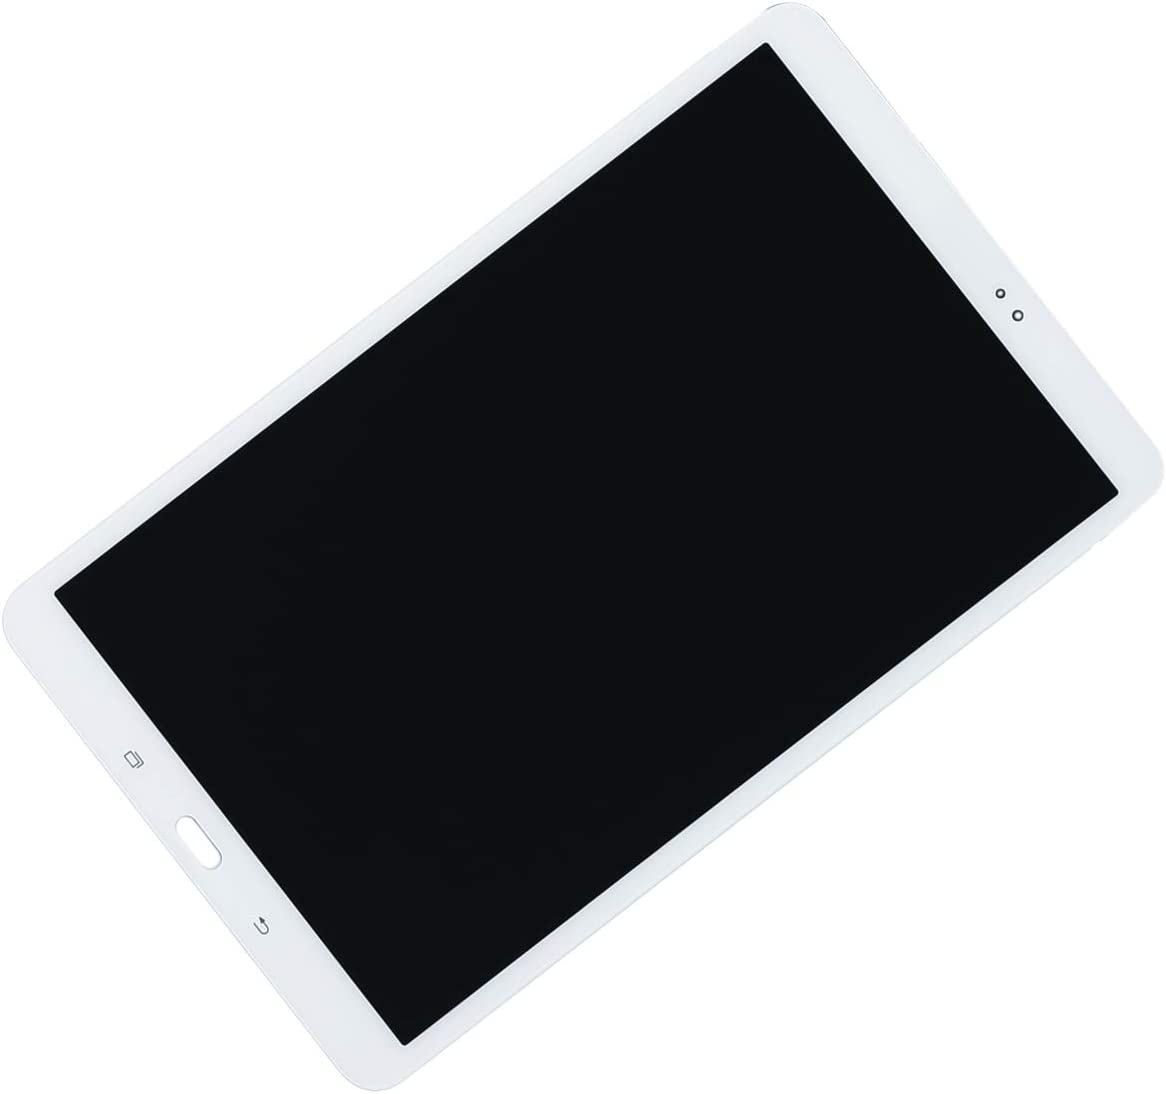 Swark LCD Display Compatible with Samsung Galaxy Tab A 10.1 2016 SM-T580 T585 T587 Touch Screen Digitizer Replacement White